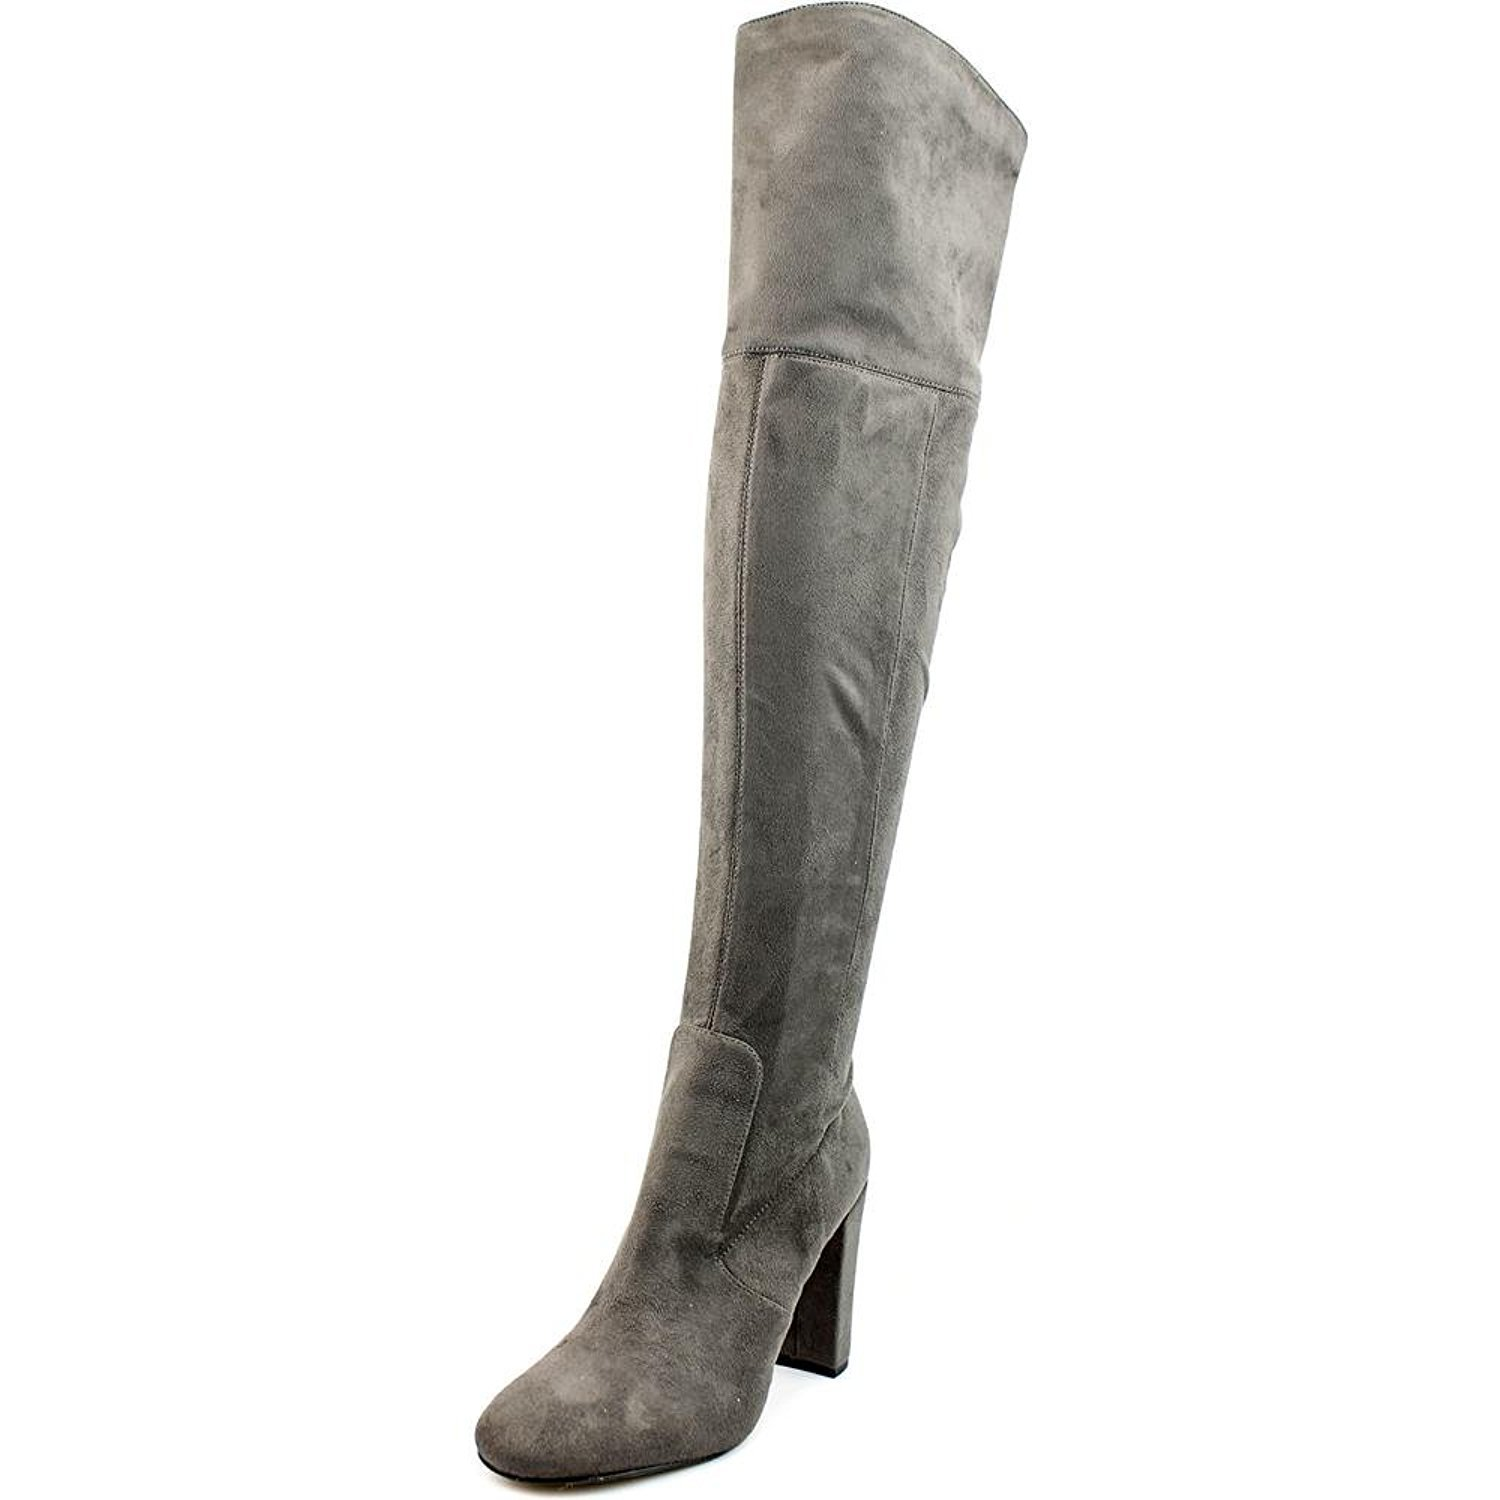 Ivanka Trump Rylee Rear Zip Over The Knee Boots, Dark Gray, 8.5 US by Ivanka Trump (Image #1)